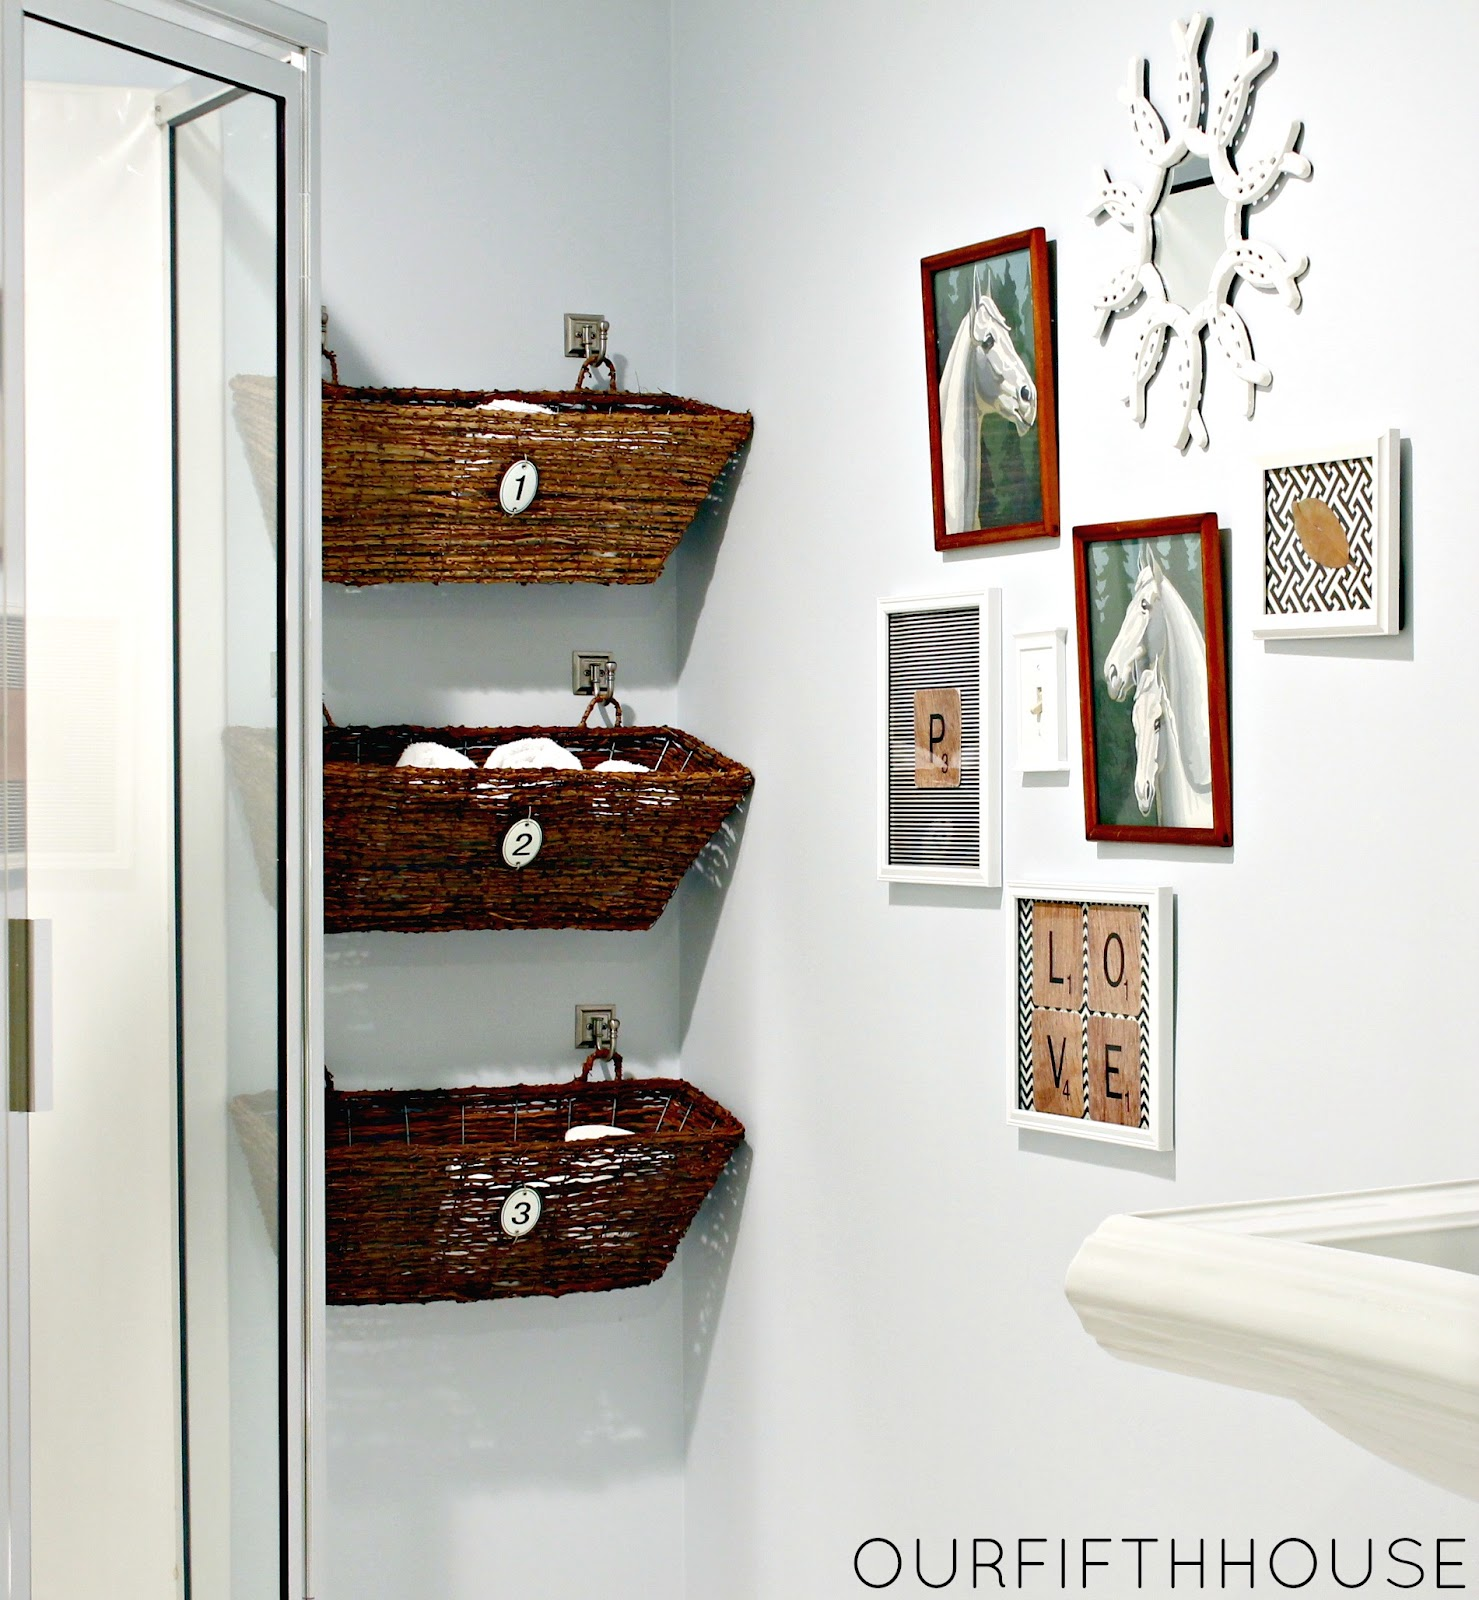 Luxury 12 small bathroom storage ideas - wall storage solutons and shelves for zjqrrqt